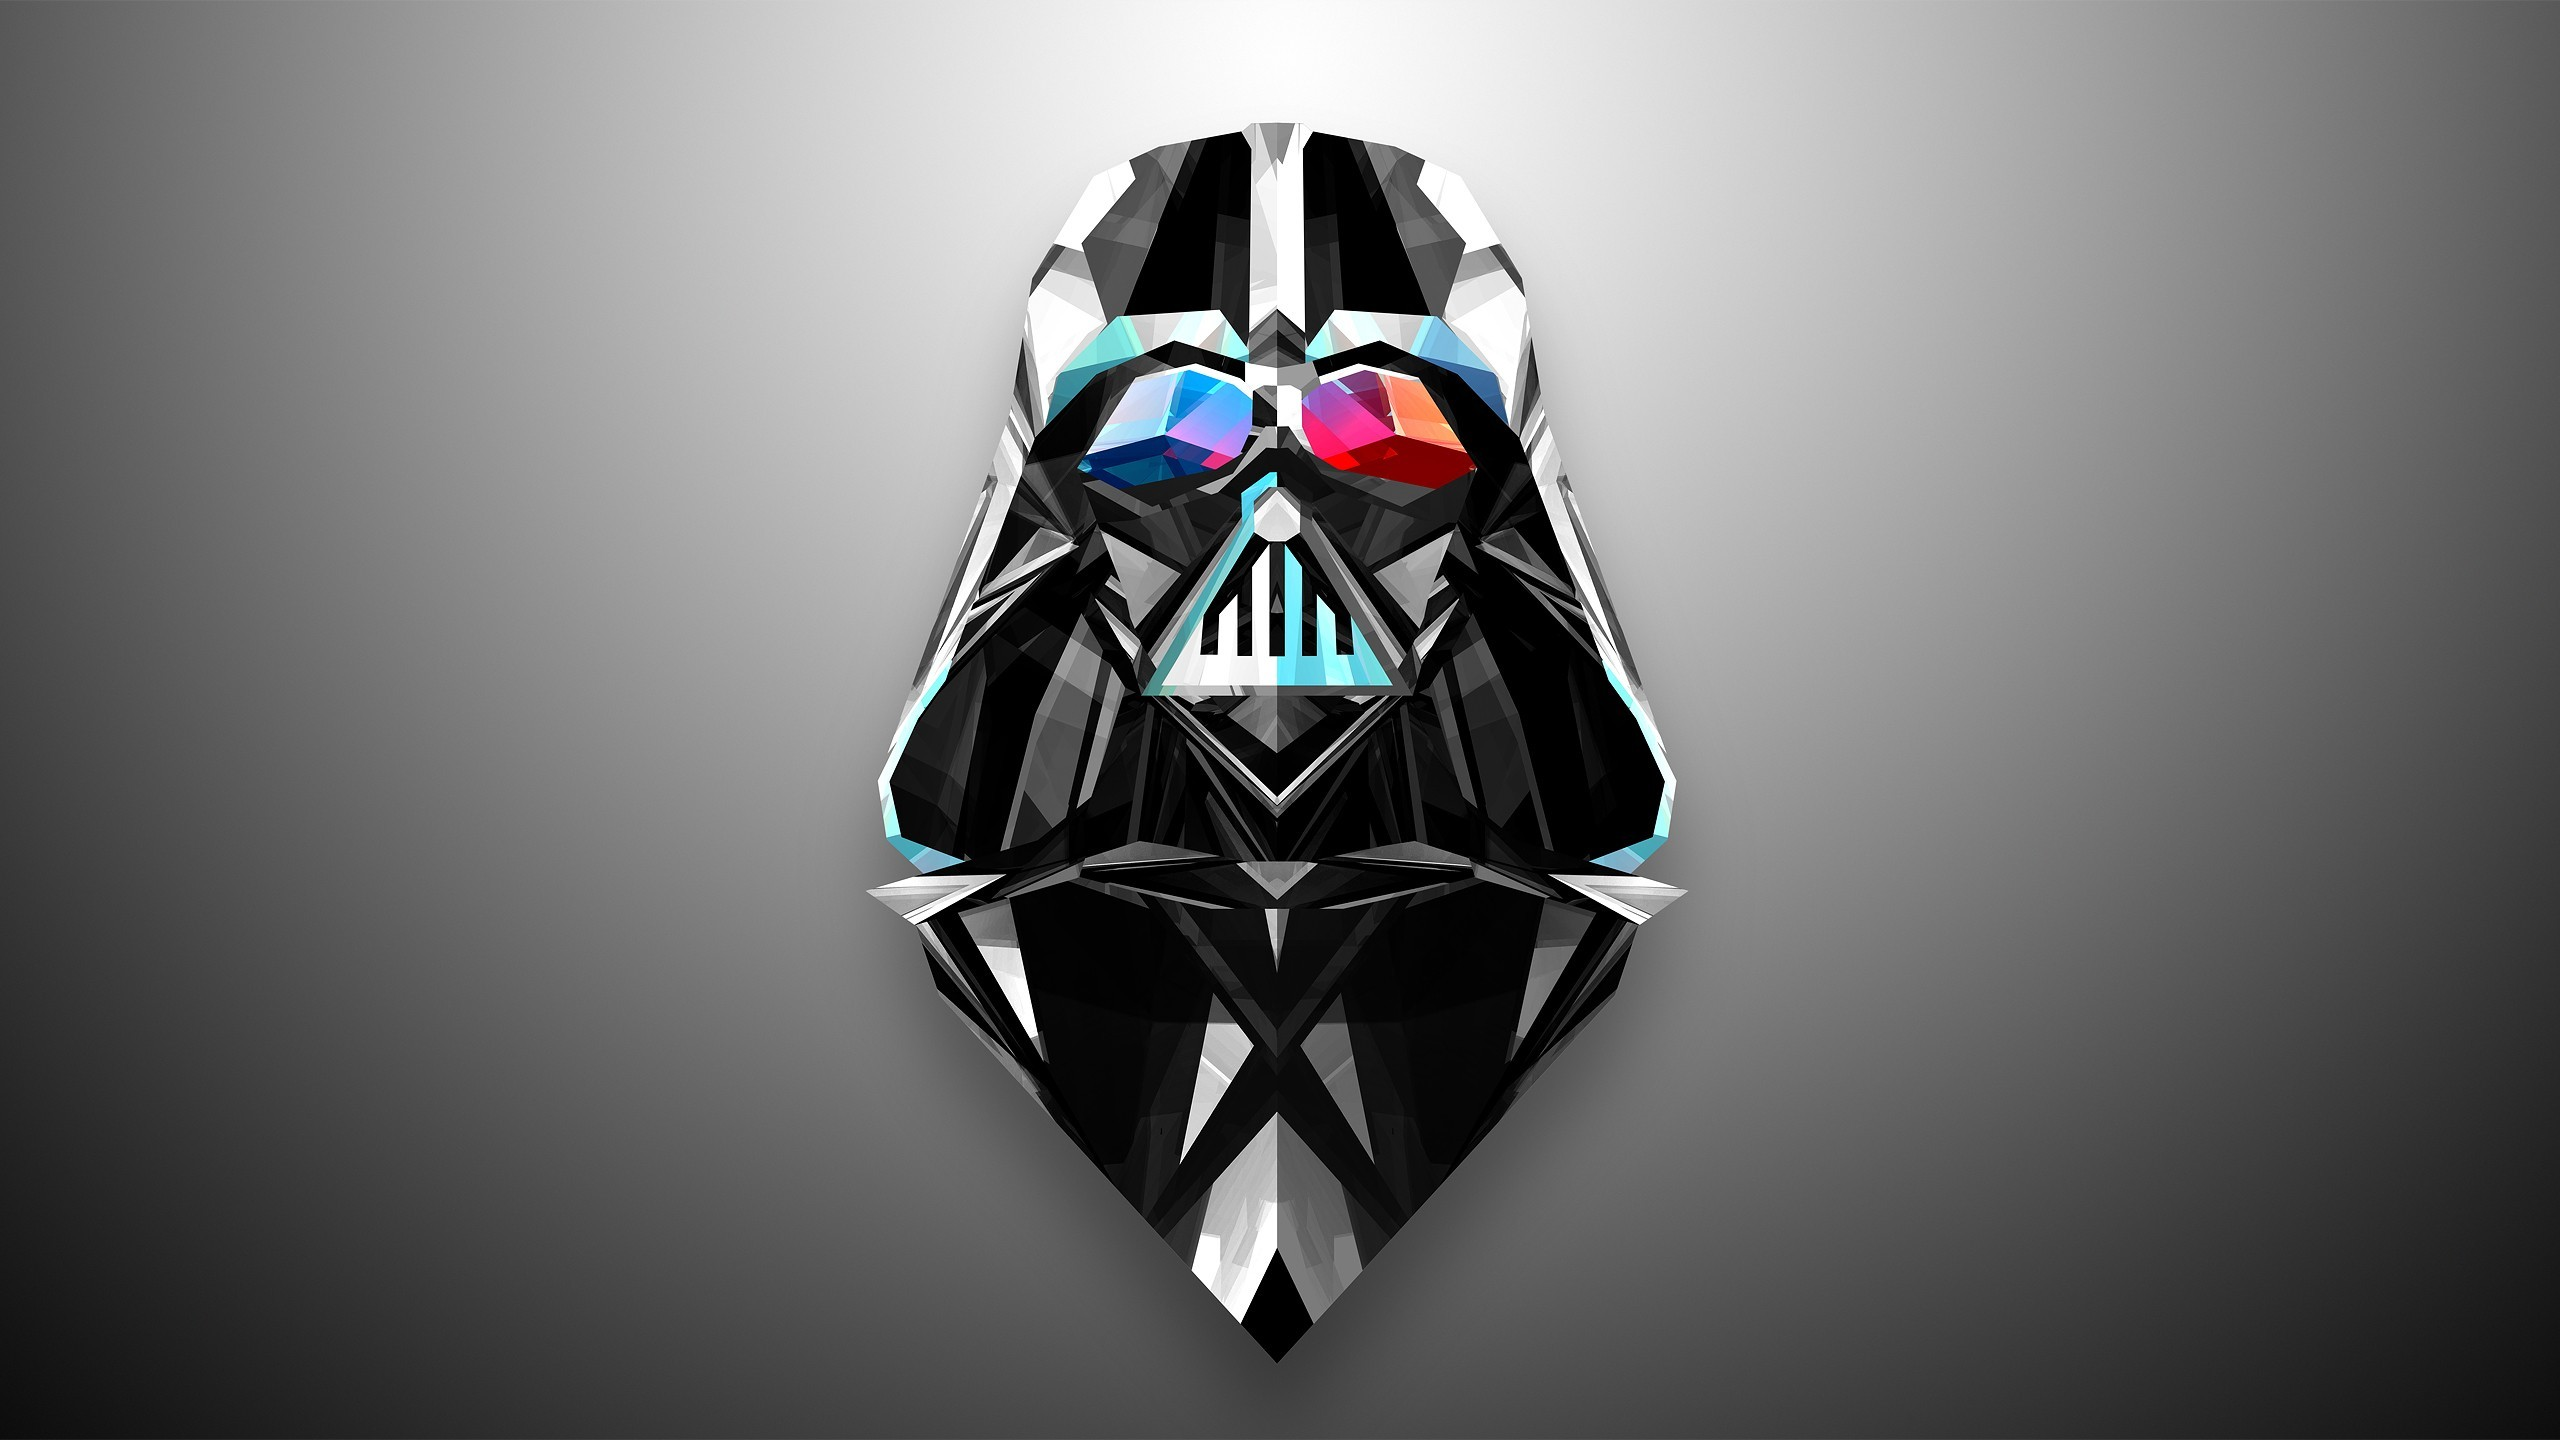 Darth Vader and Daft Punk get the Justin Maller treatment in Helmetica, a  vivid series of geometric wallpapers.